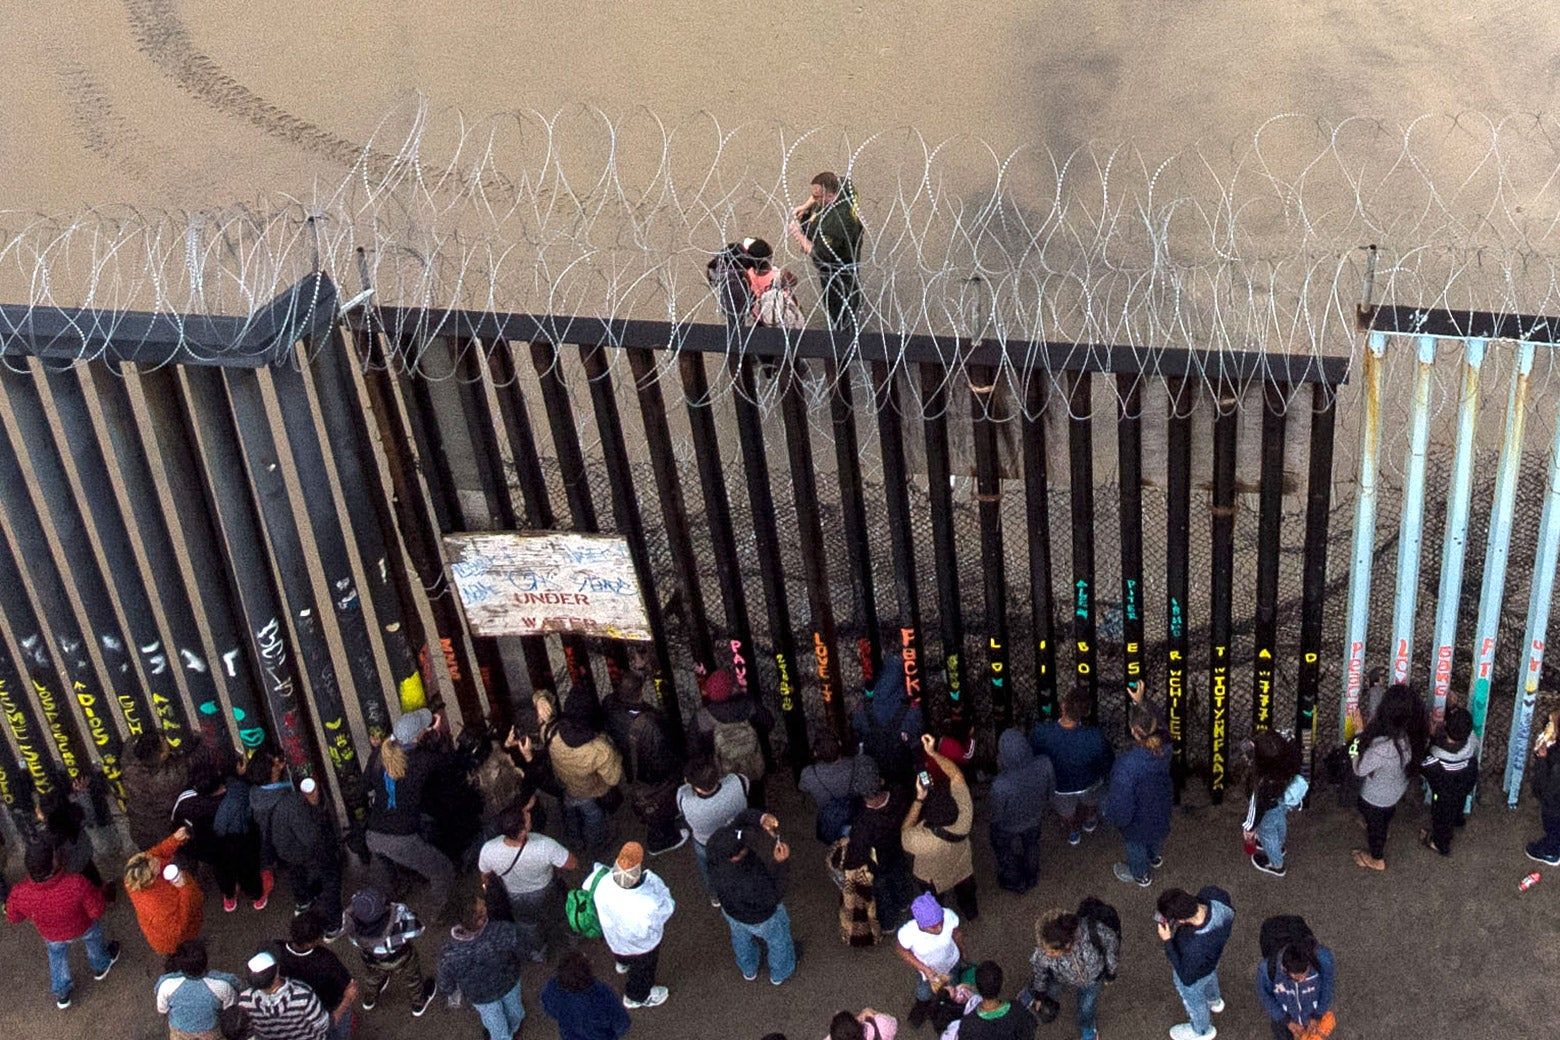 Aerial view of migrants standing at the border fence.